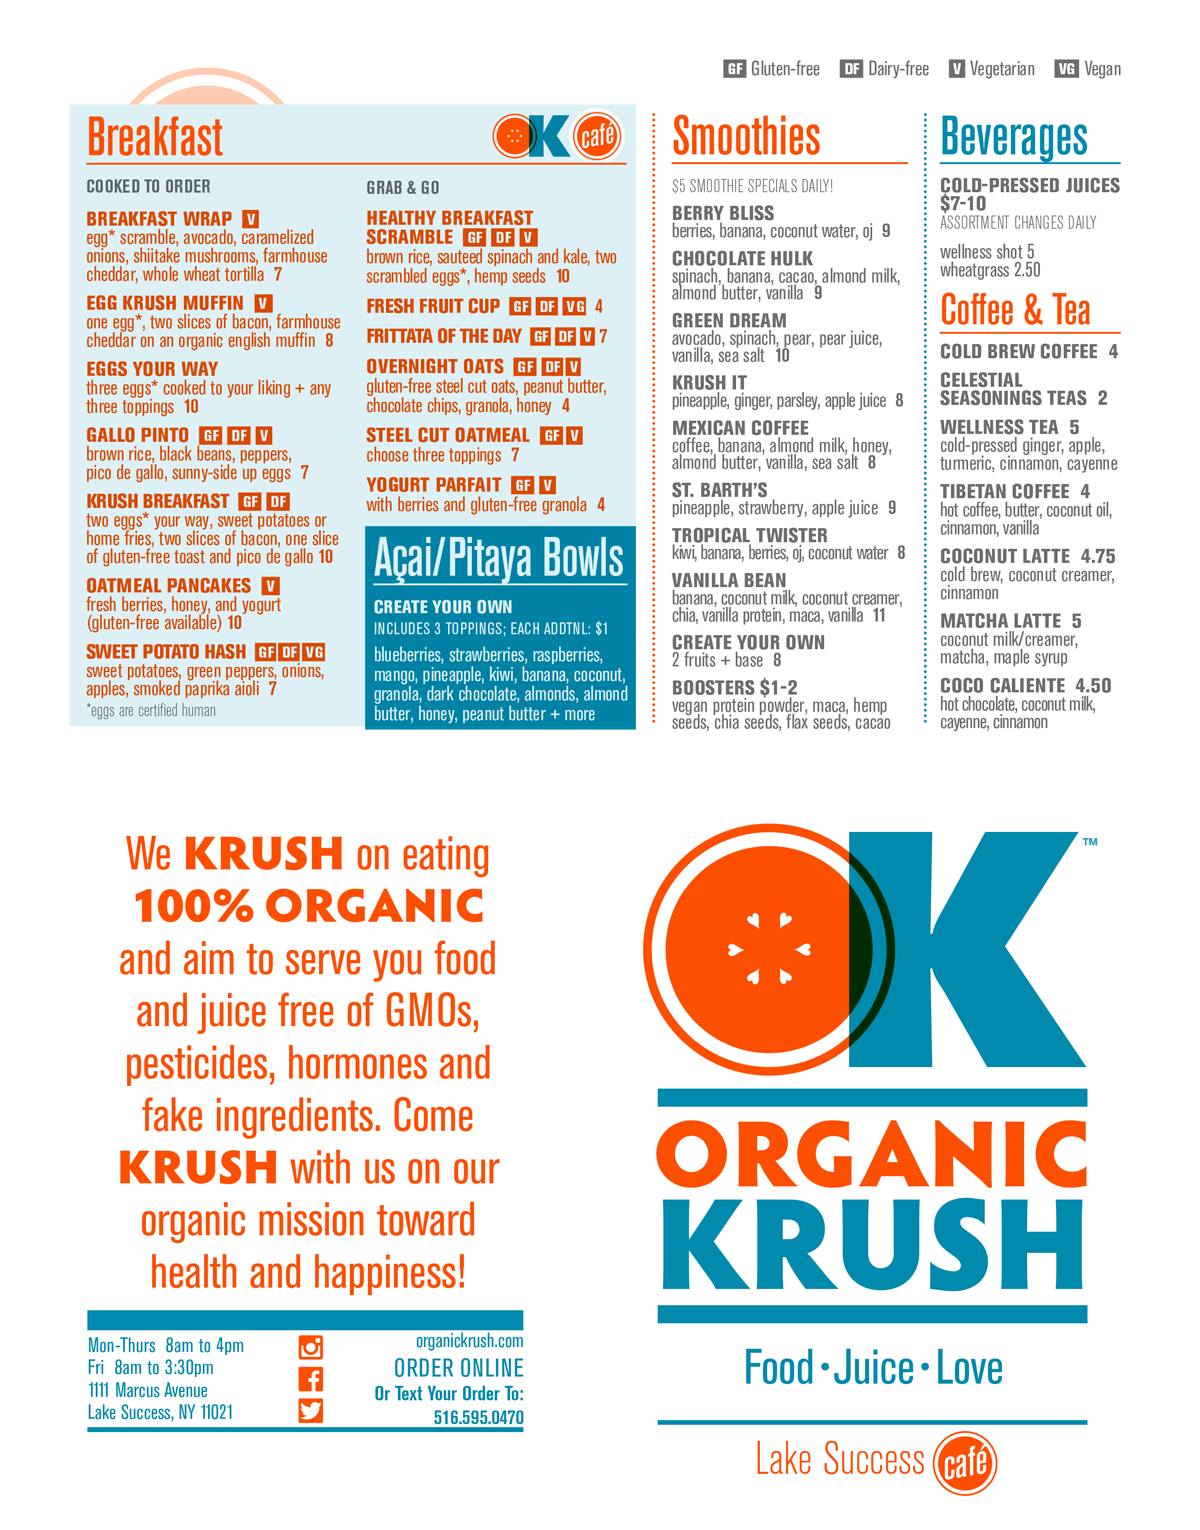 lake success cafe menu organic krush